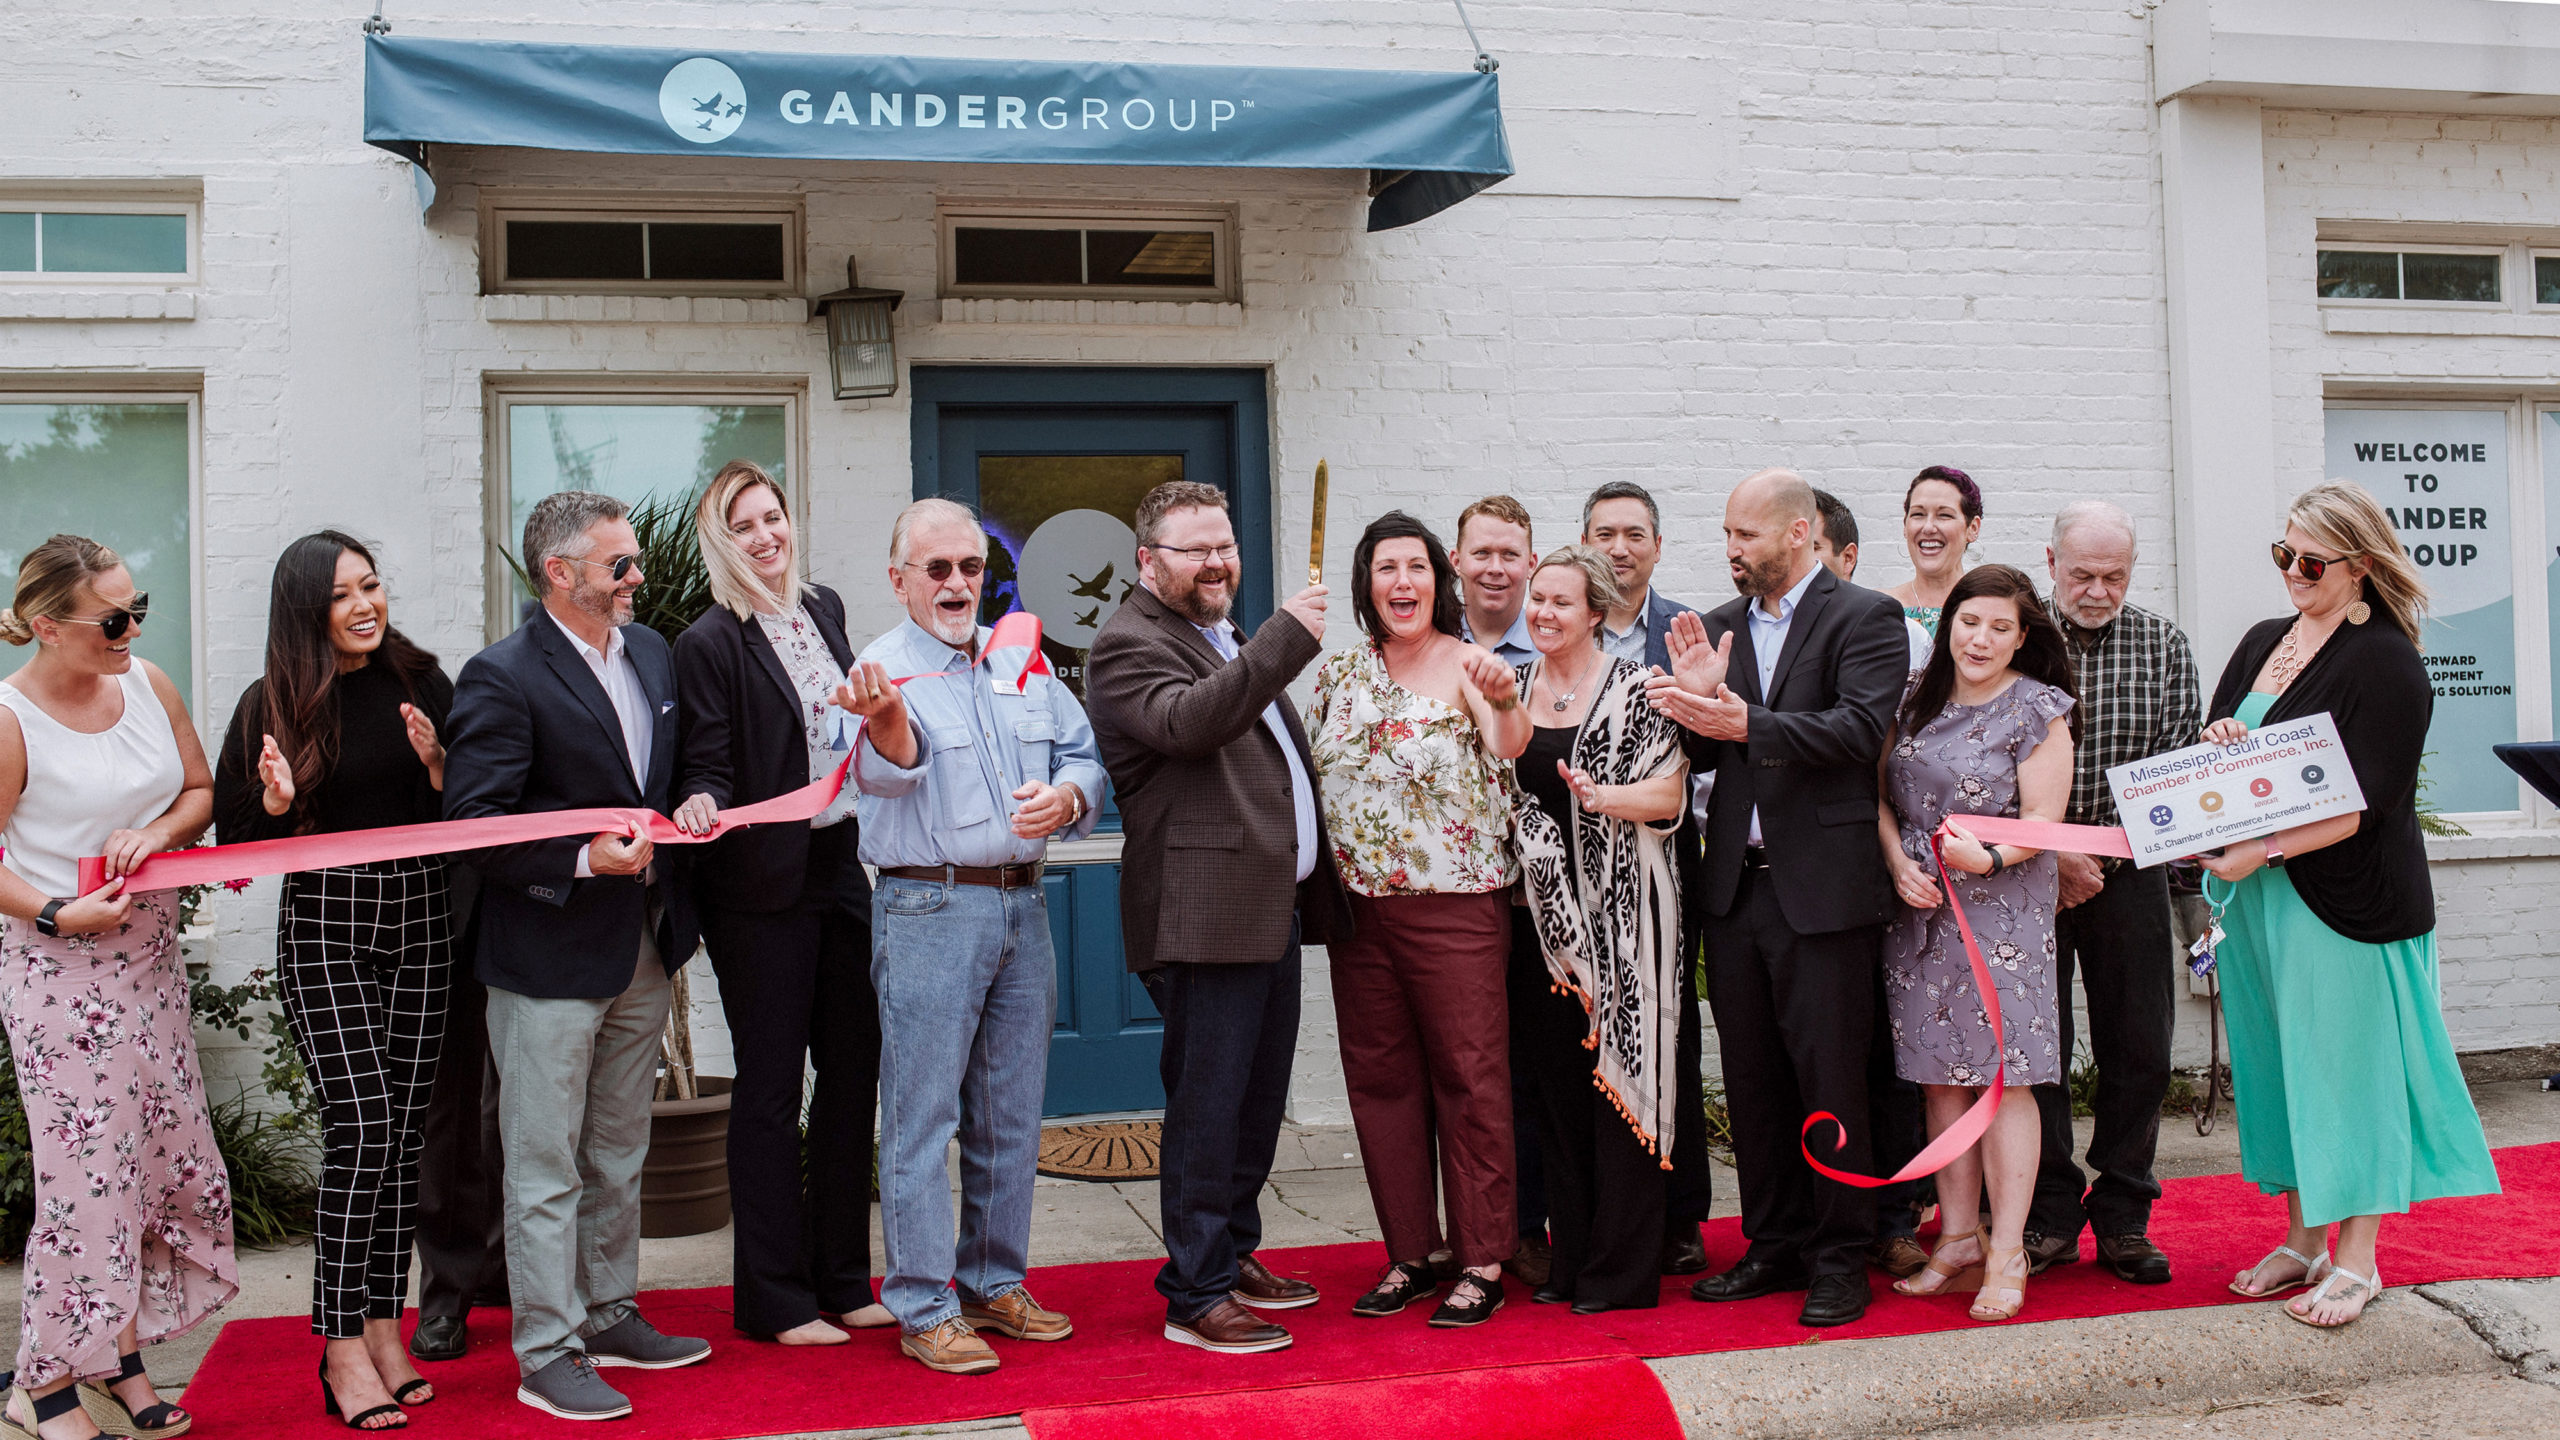 In The News - Gulfport MS Grand Opening 16 9 ratio